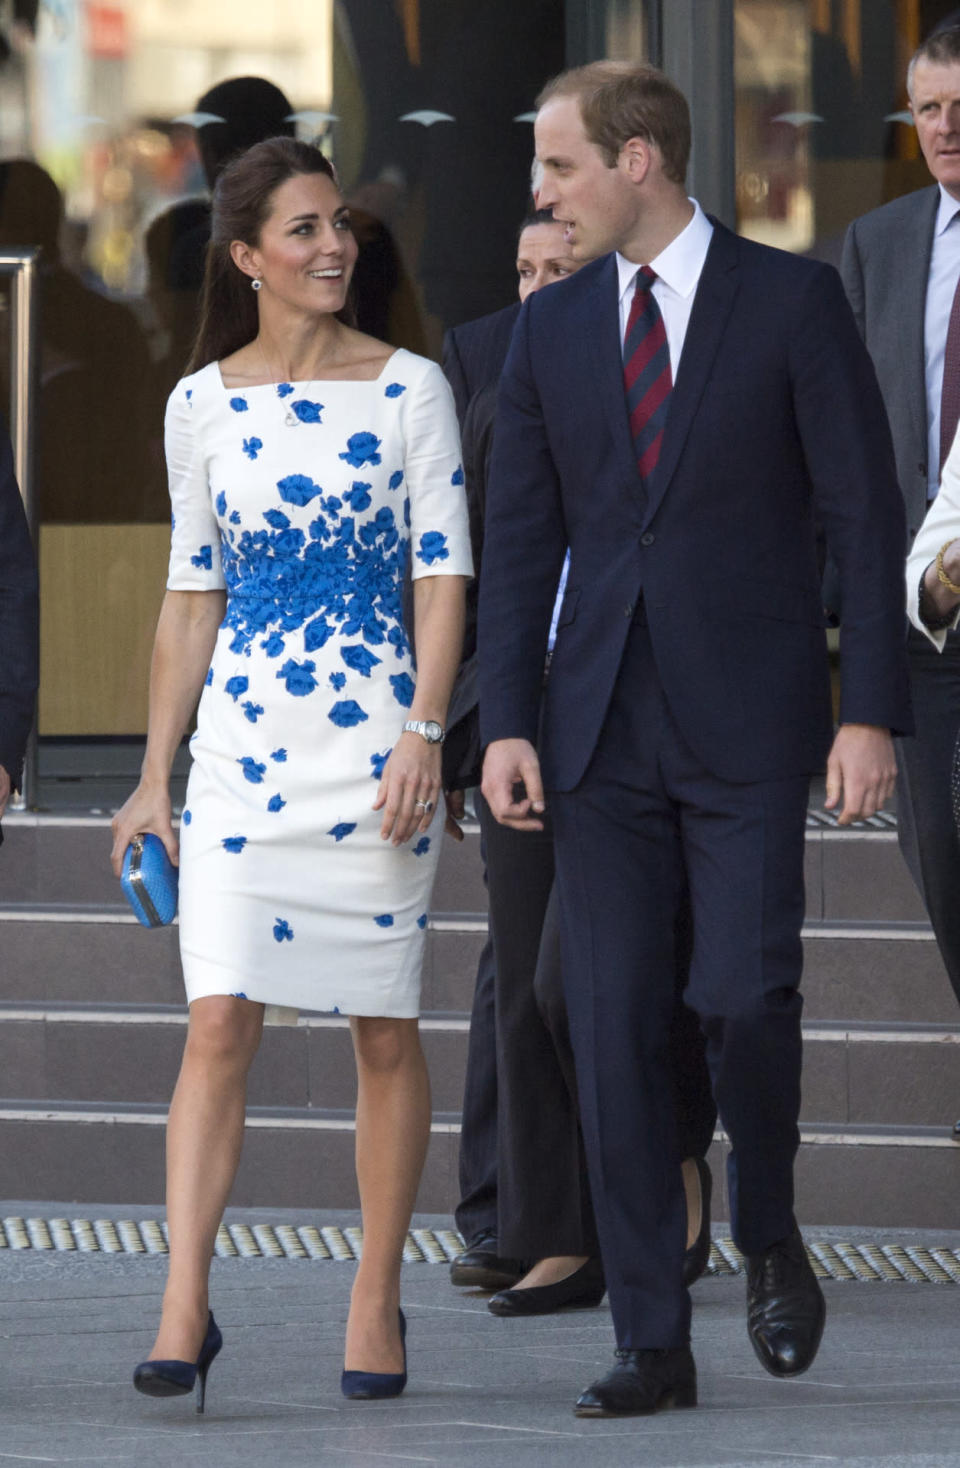 <p>Kate met the crowds in Brisbane in a summery floral dress by L.K. Bennett. She accessorised with an aqua blue clutch by Australian brand, Oroton, and Alexander McQueen pumps. </p><p><i>[Photo: PA]</i></p>